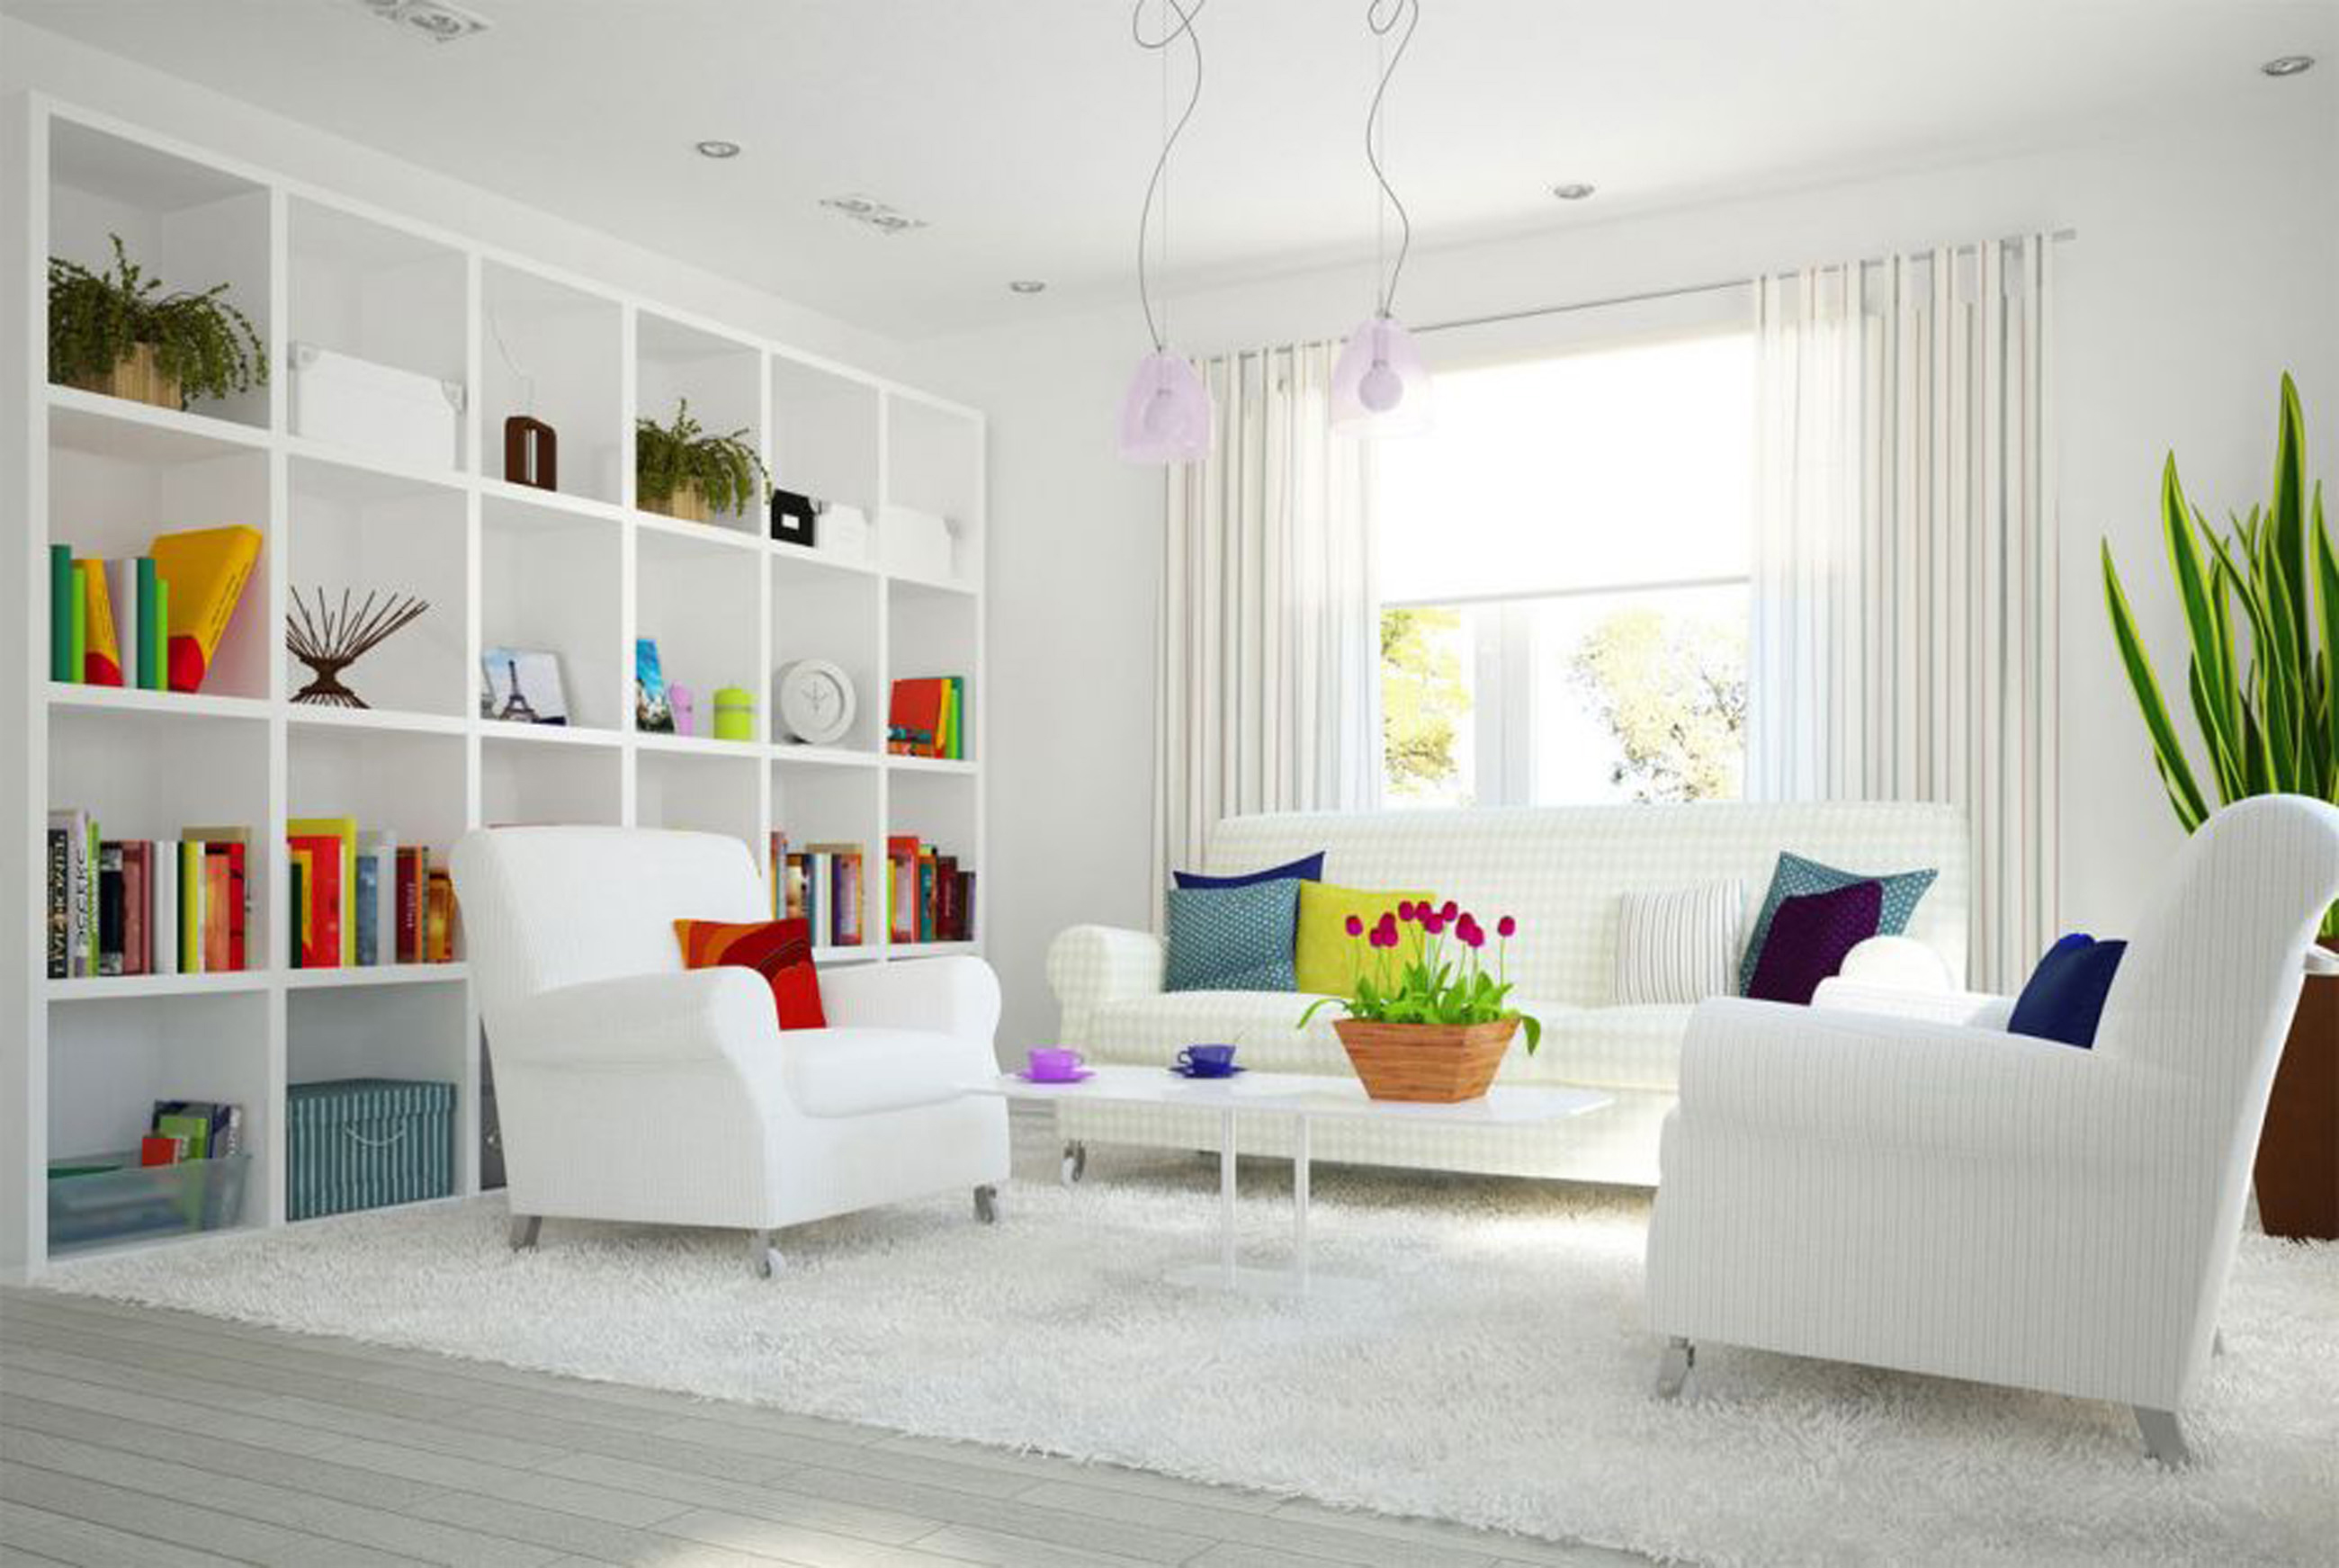 Apartments Decor Of Simple Design Ideas With White So Cleanly Theme Design (Image 26 of 45)